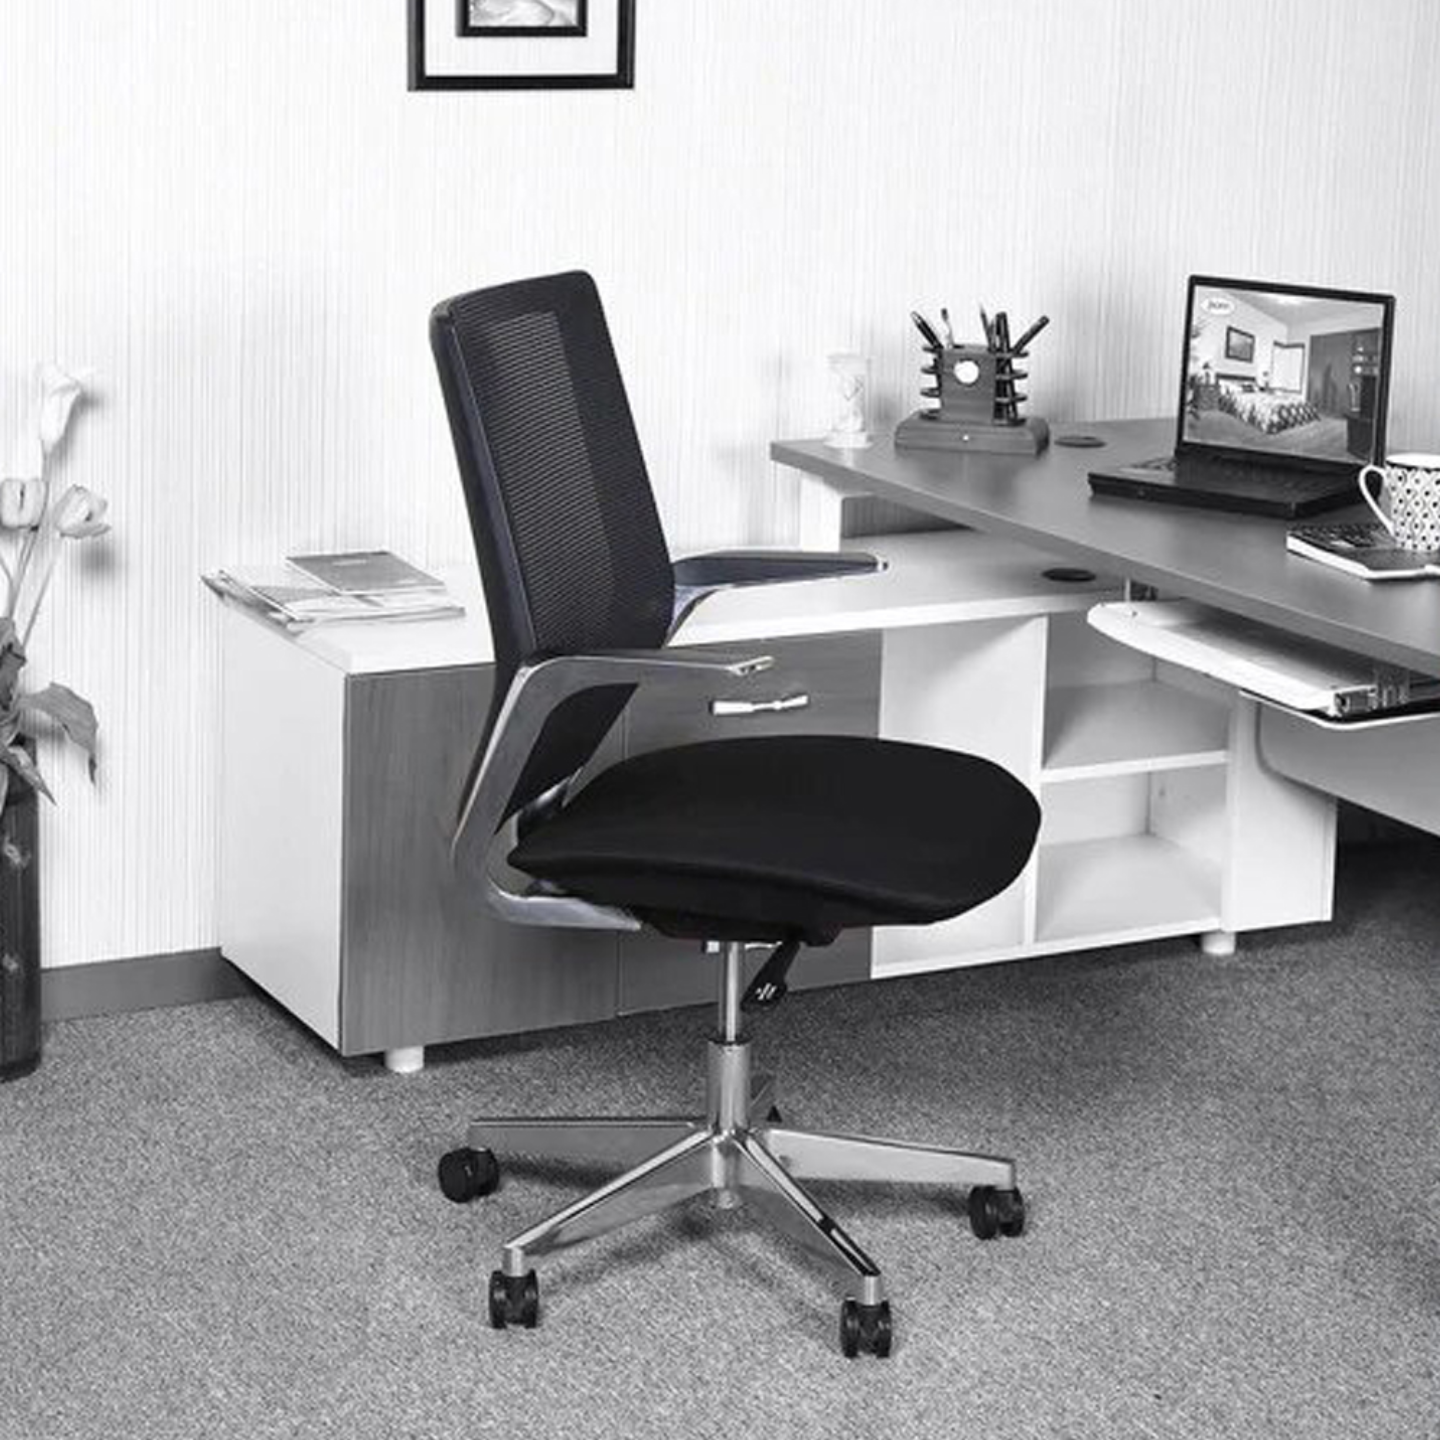 Office Chair F1M-MB